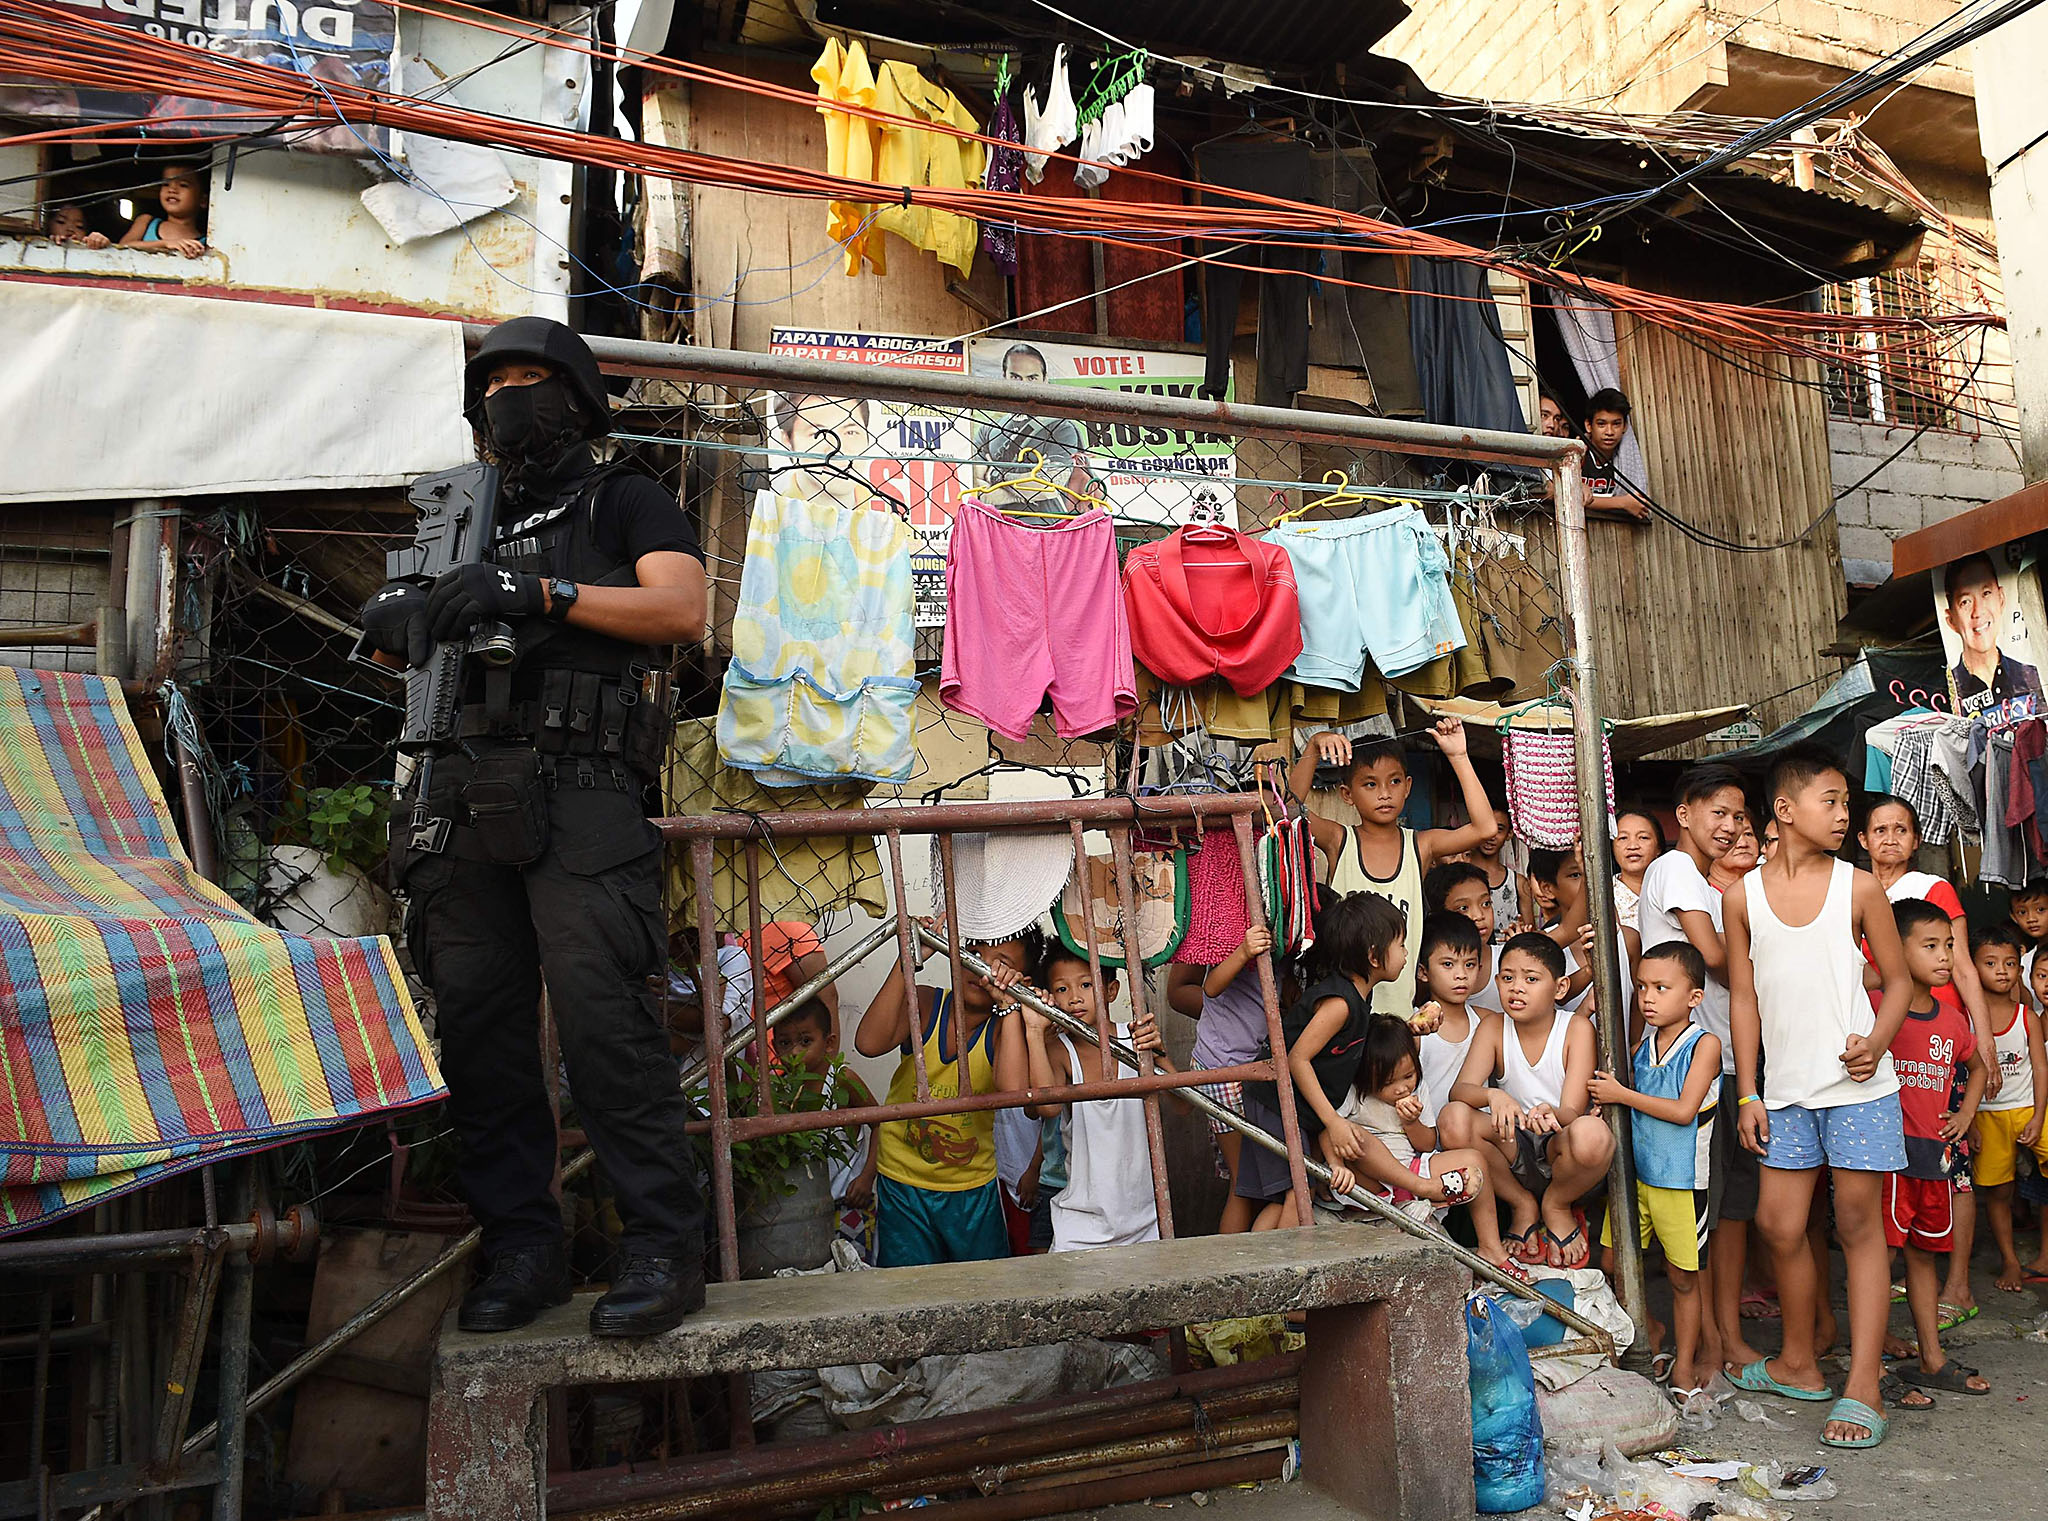 A member of the Special Weapons and Tactics (SWAT) team stands guard as residents look on during an anti-drug operation at an informal settlers area in Manila on November 9, 2016.  Since President Rodrigo Duterte took office on June 30, his war on drugs and other crimes has claimed more than 4,100 lives, according to official figures. / AFP PHOTO / TED ALJIBETED ALJIBE/AFP/Getty Images